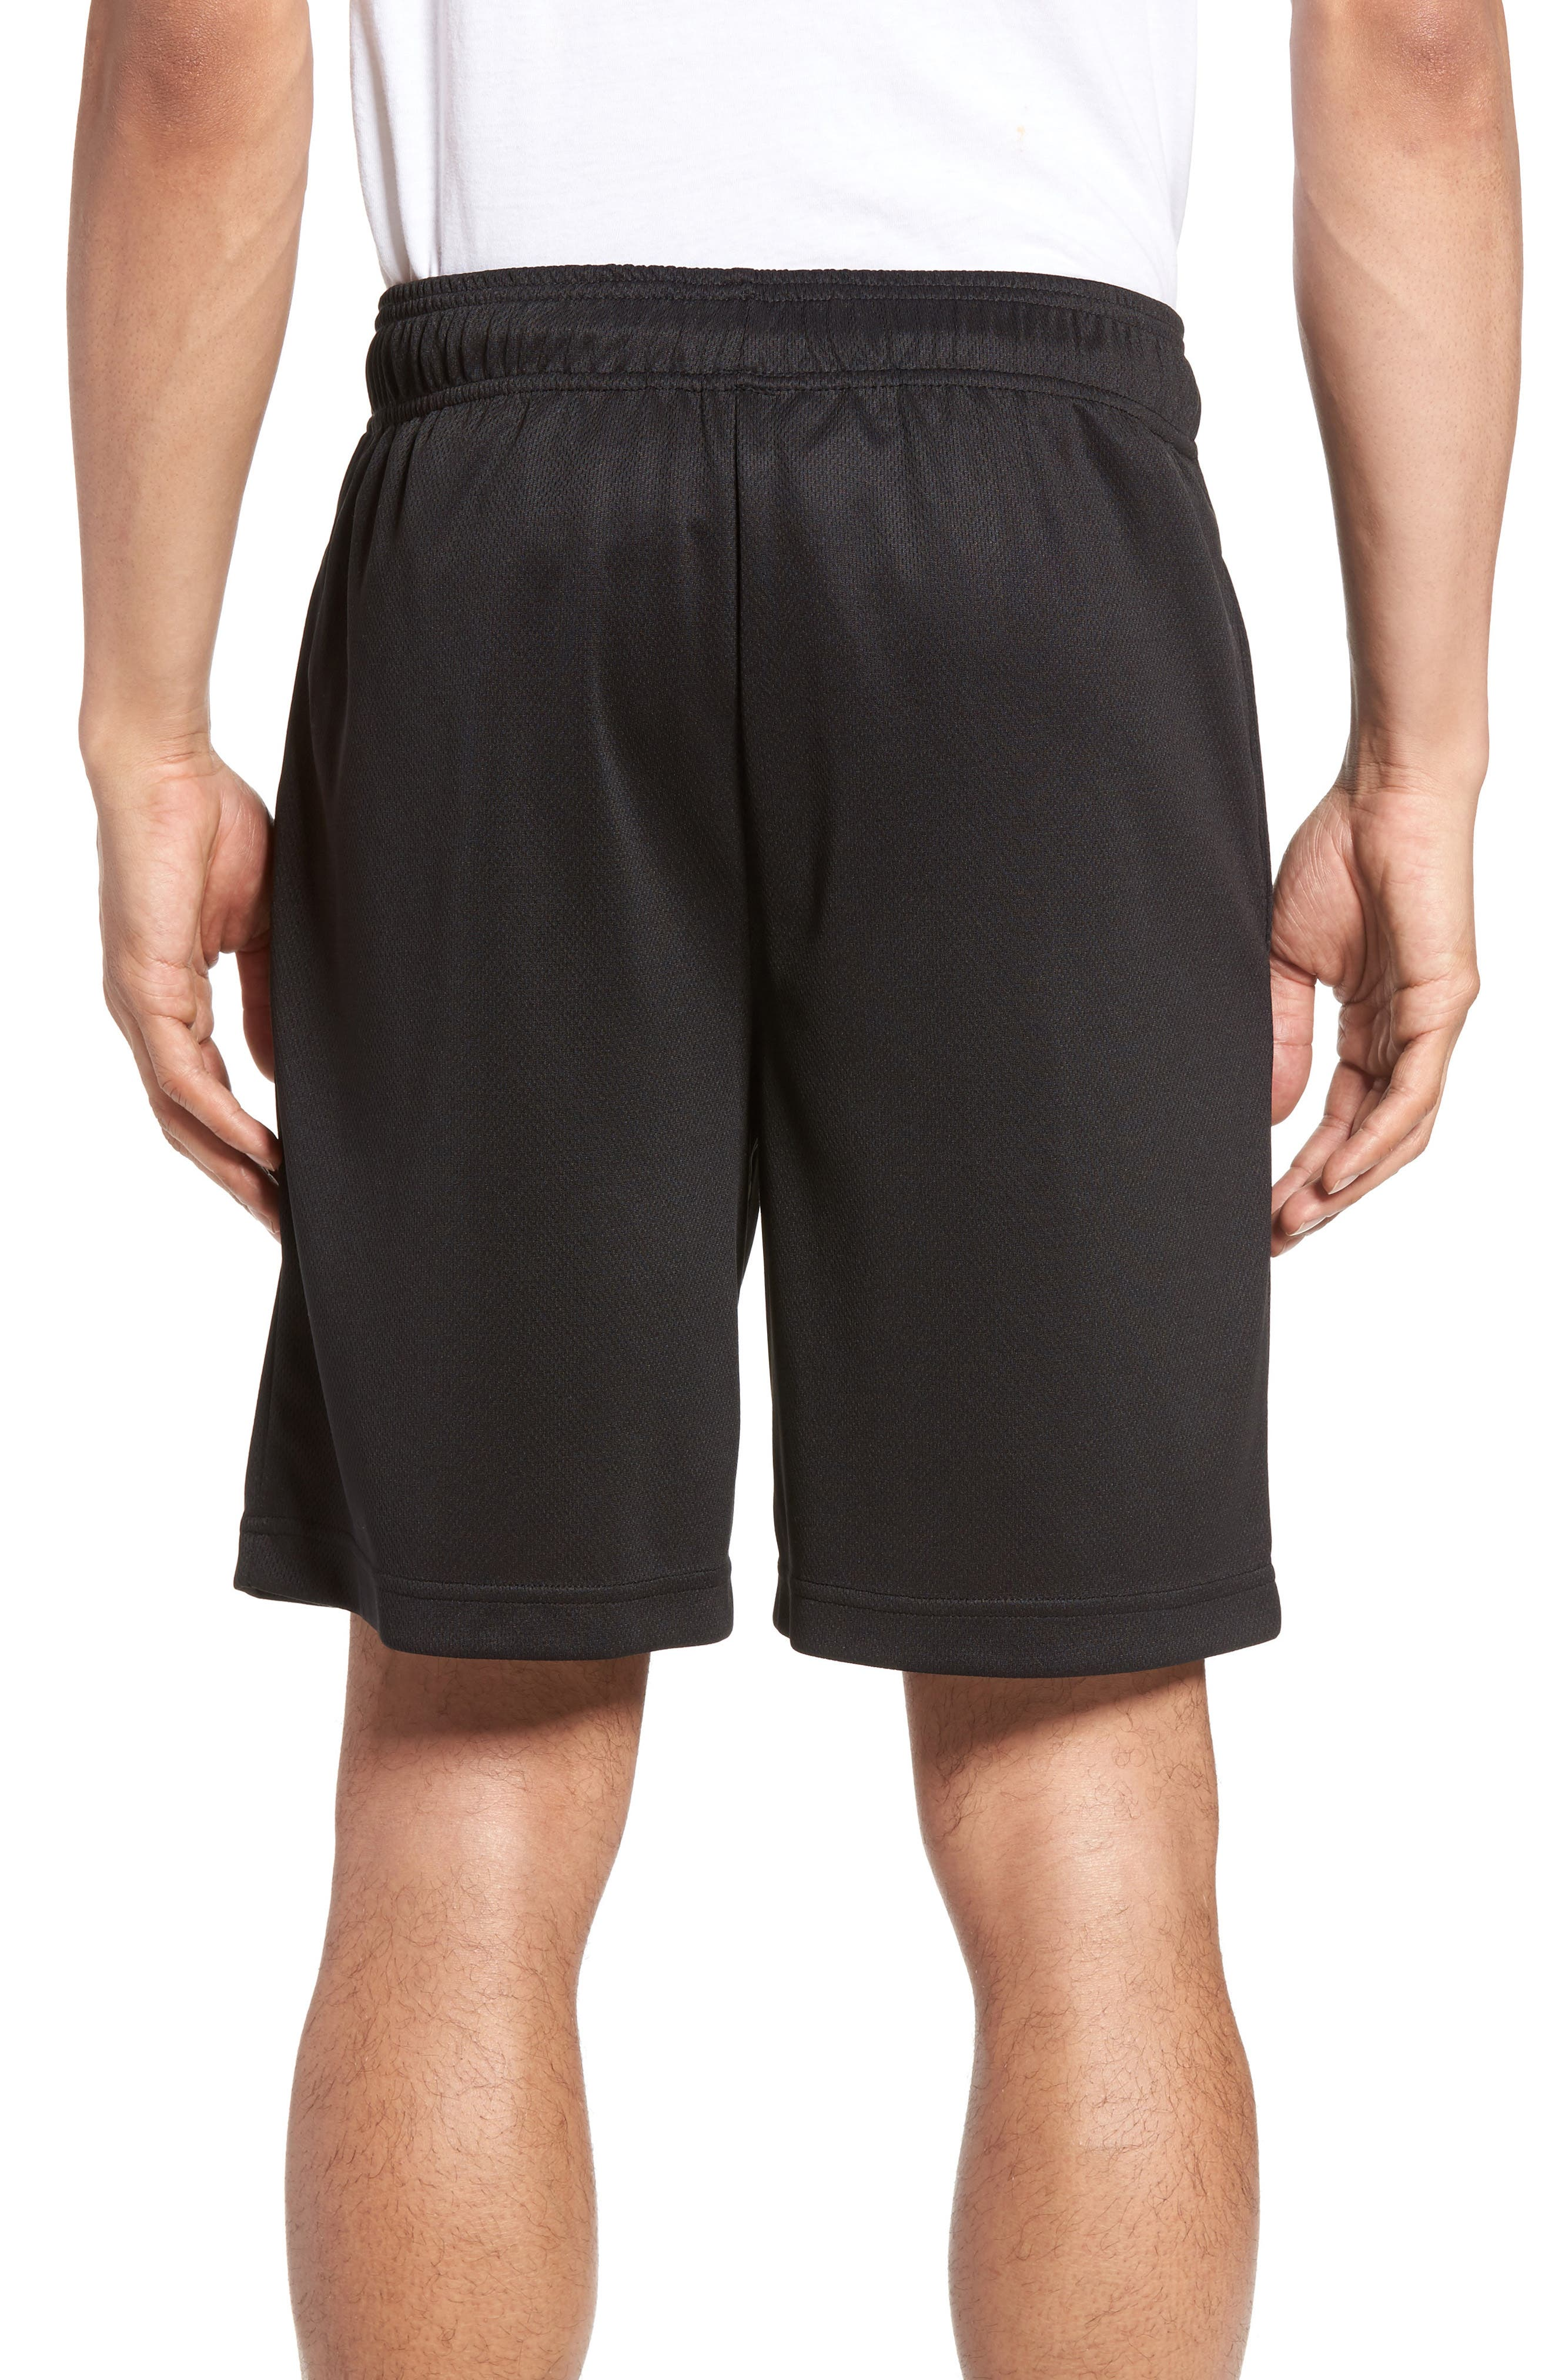 Work Out Lounge Shorts,                             Alternate thumbnail 4, color,